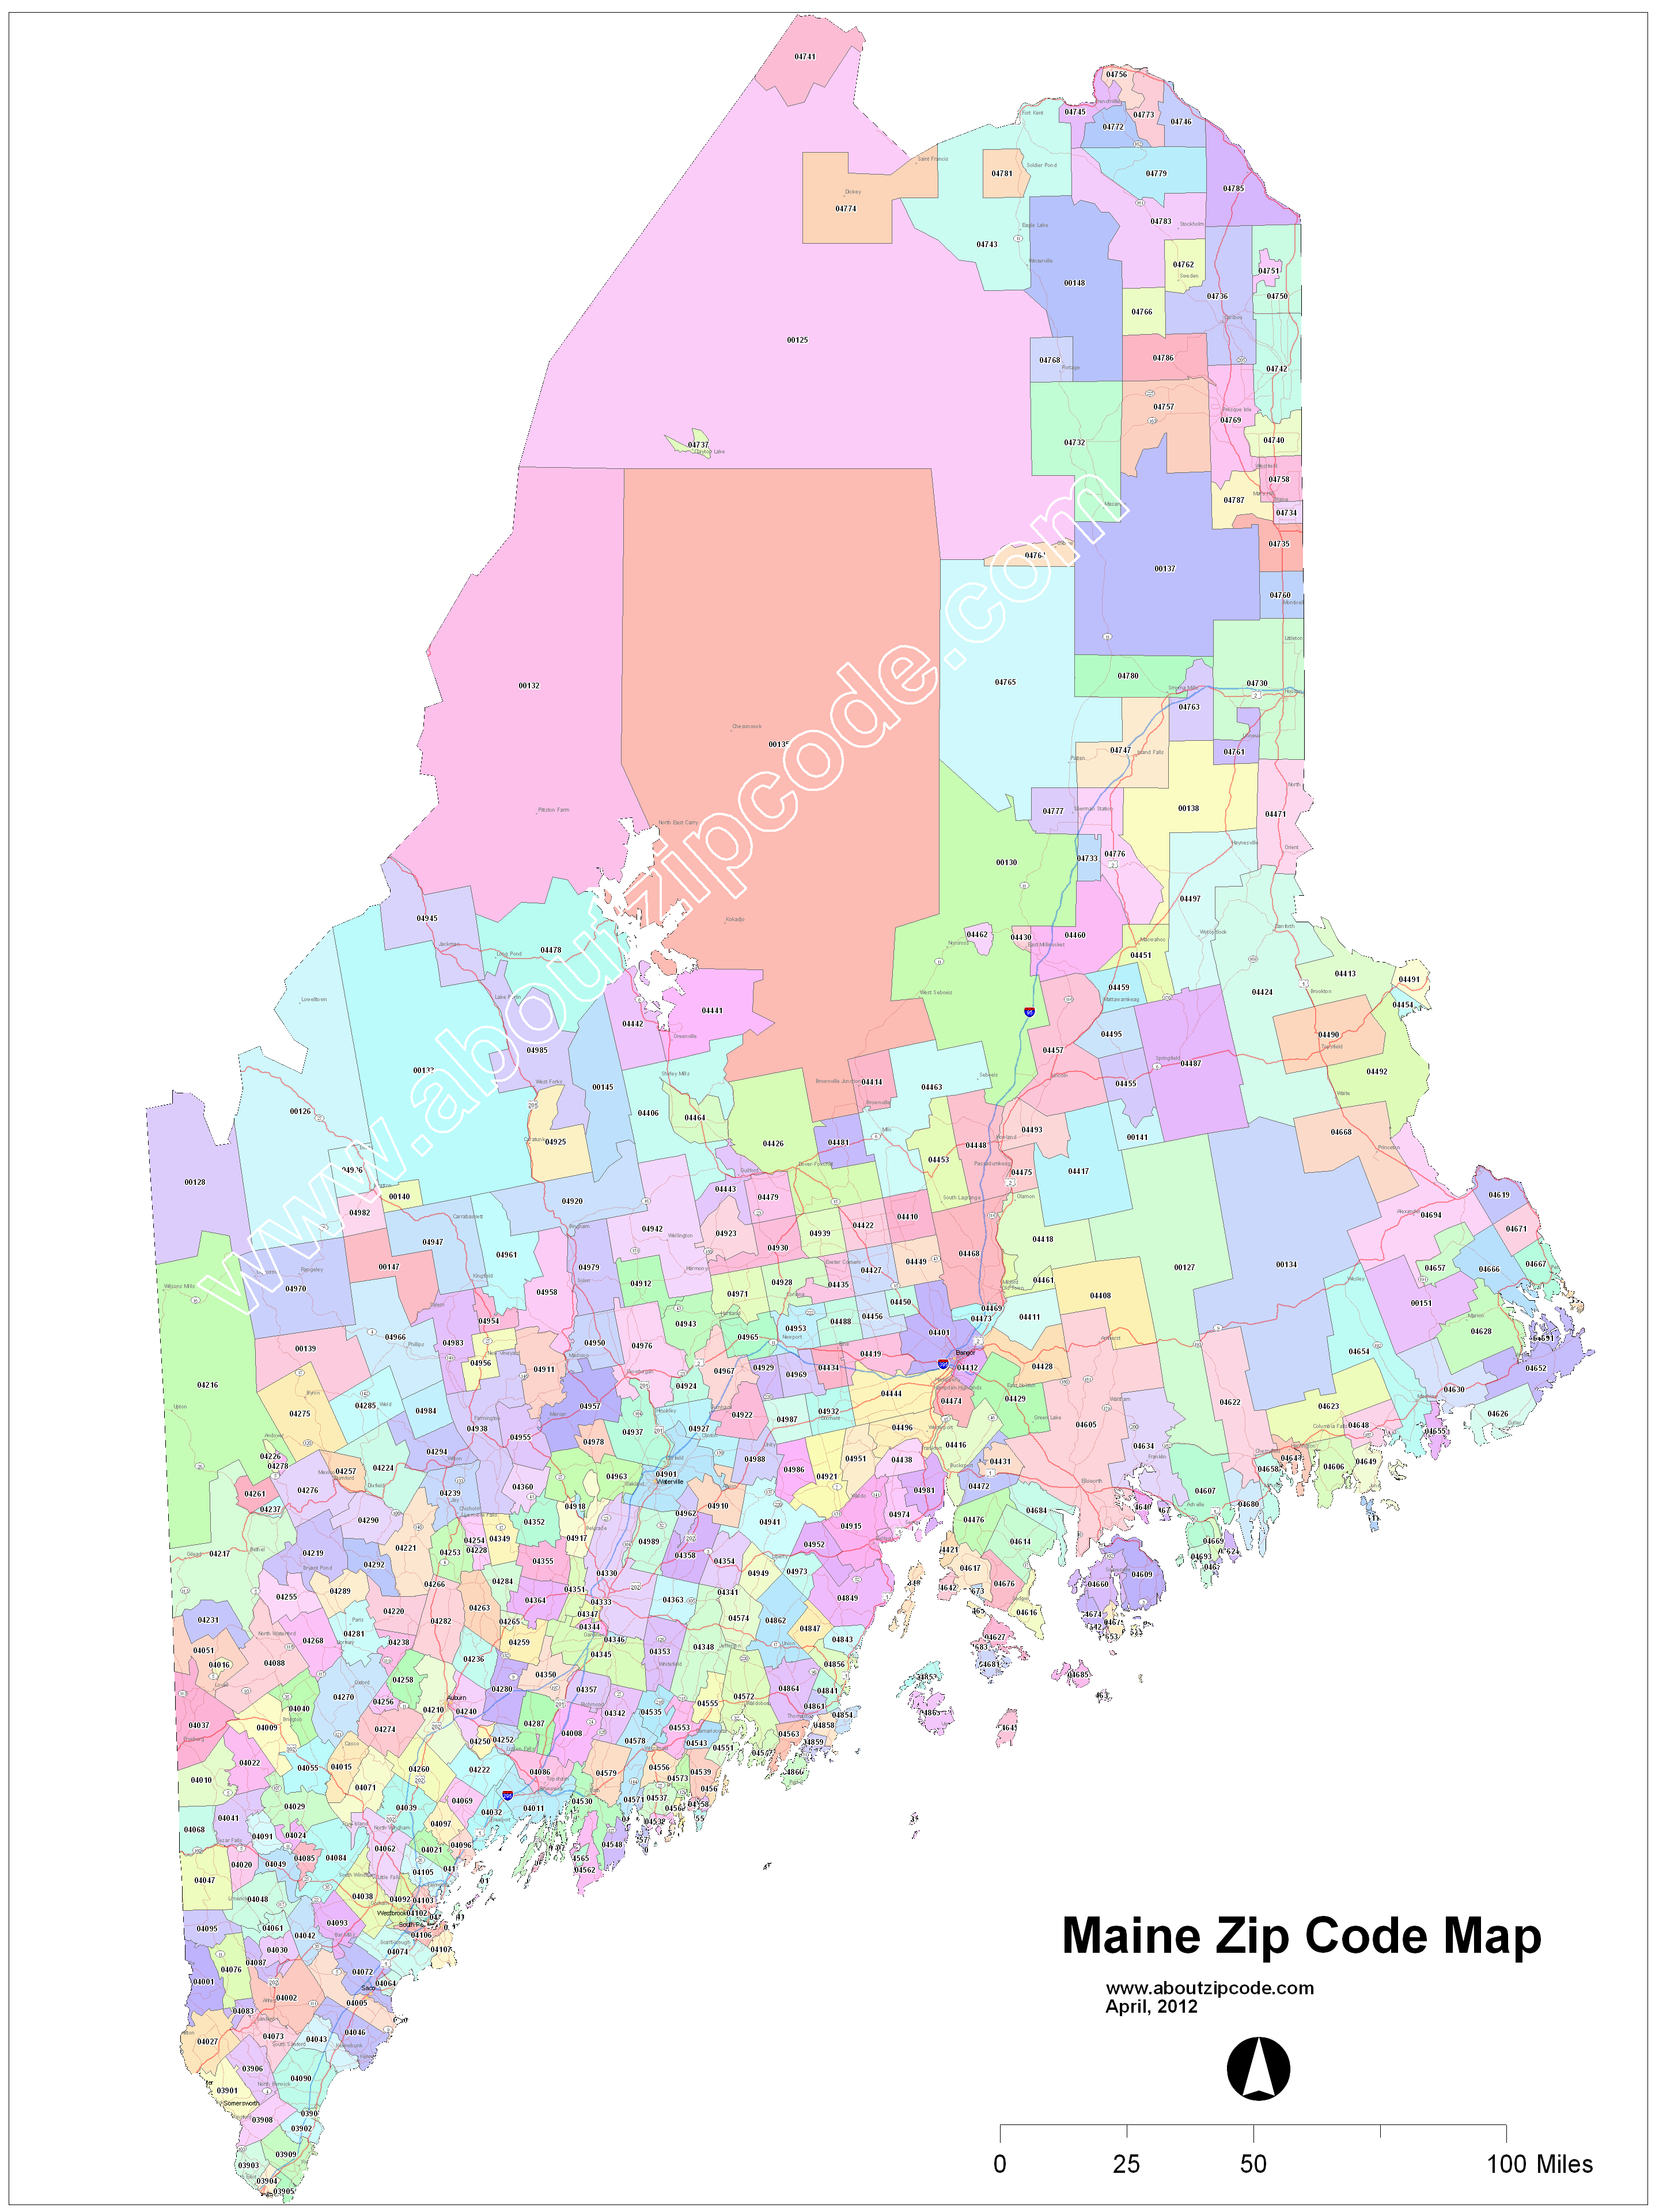 Maine Zip Code Maps Free Maine Zip Code Maps